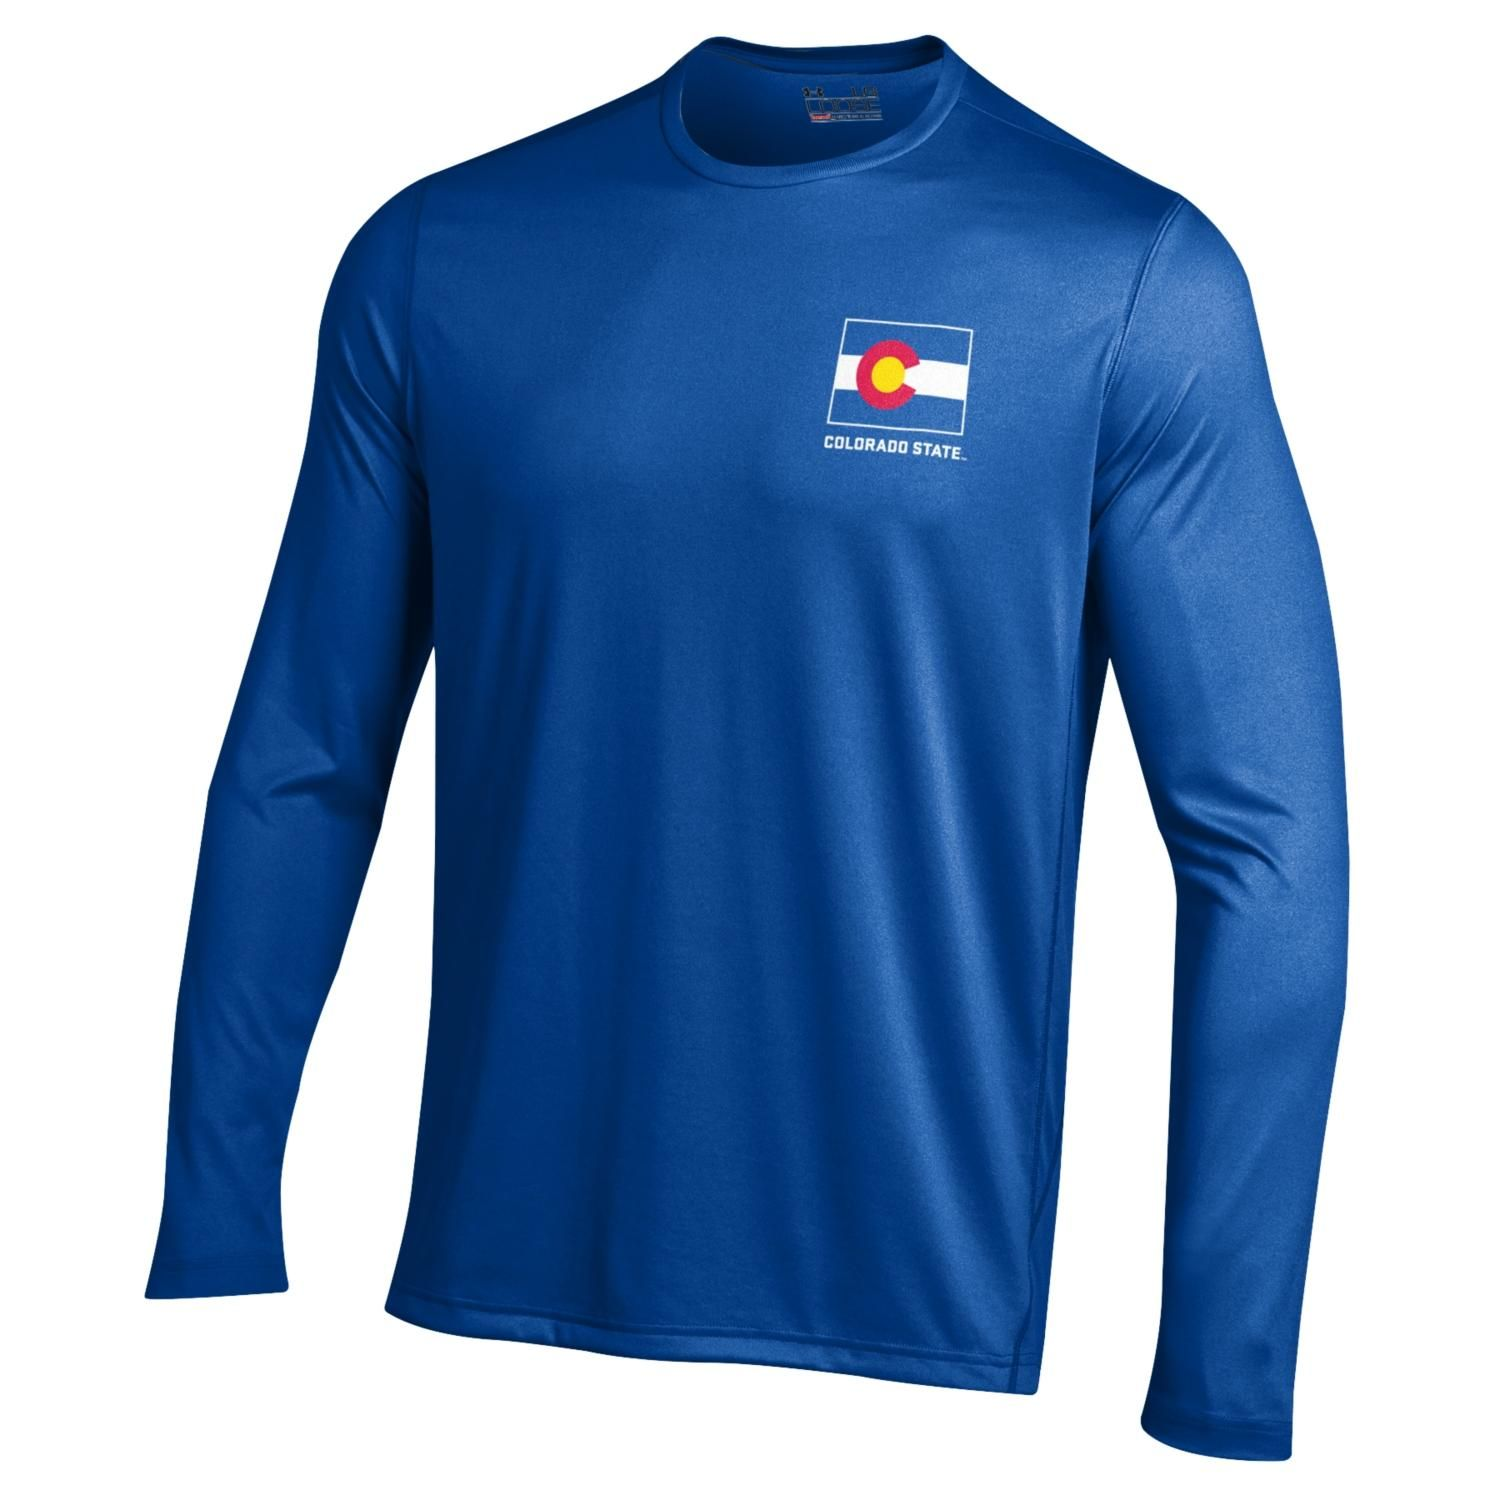 This royal blue Colorado State Pride long sleeve is